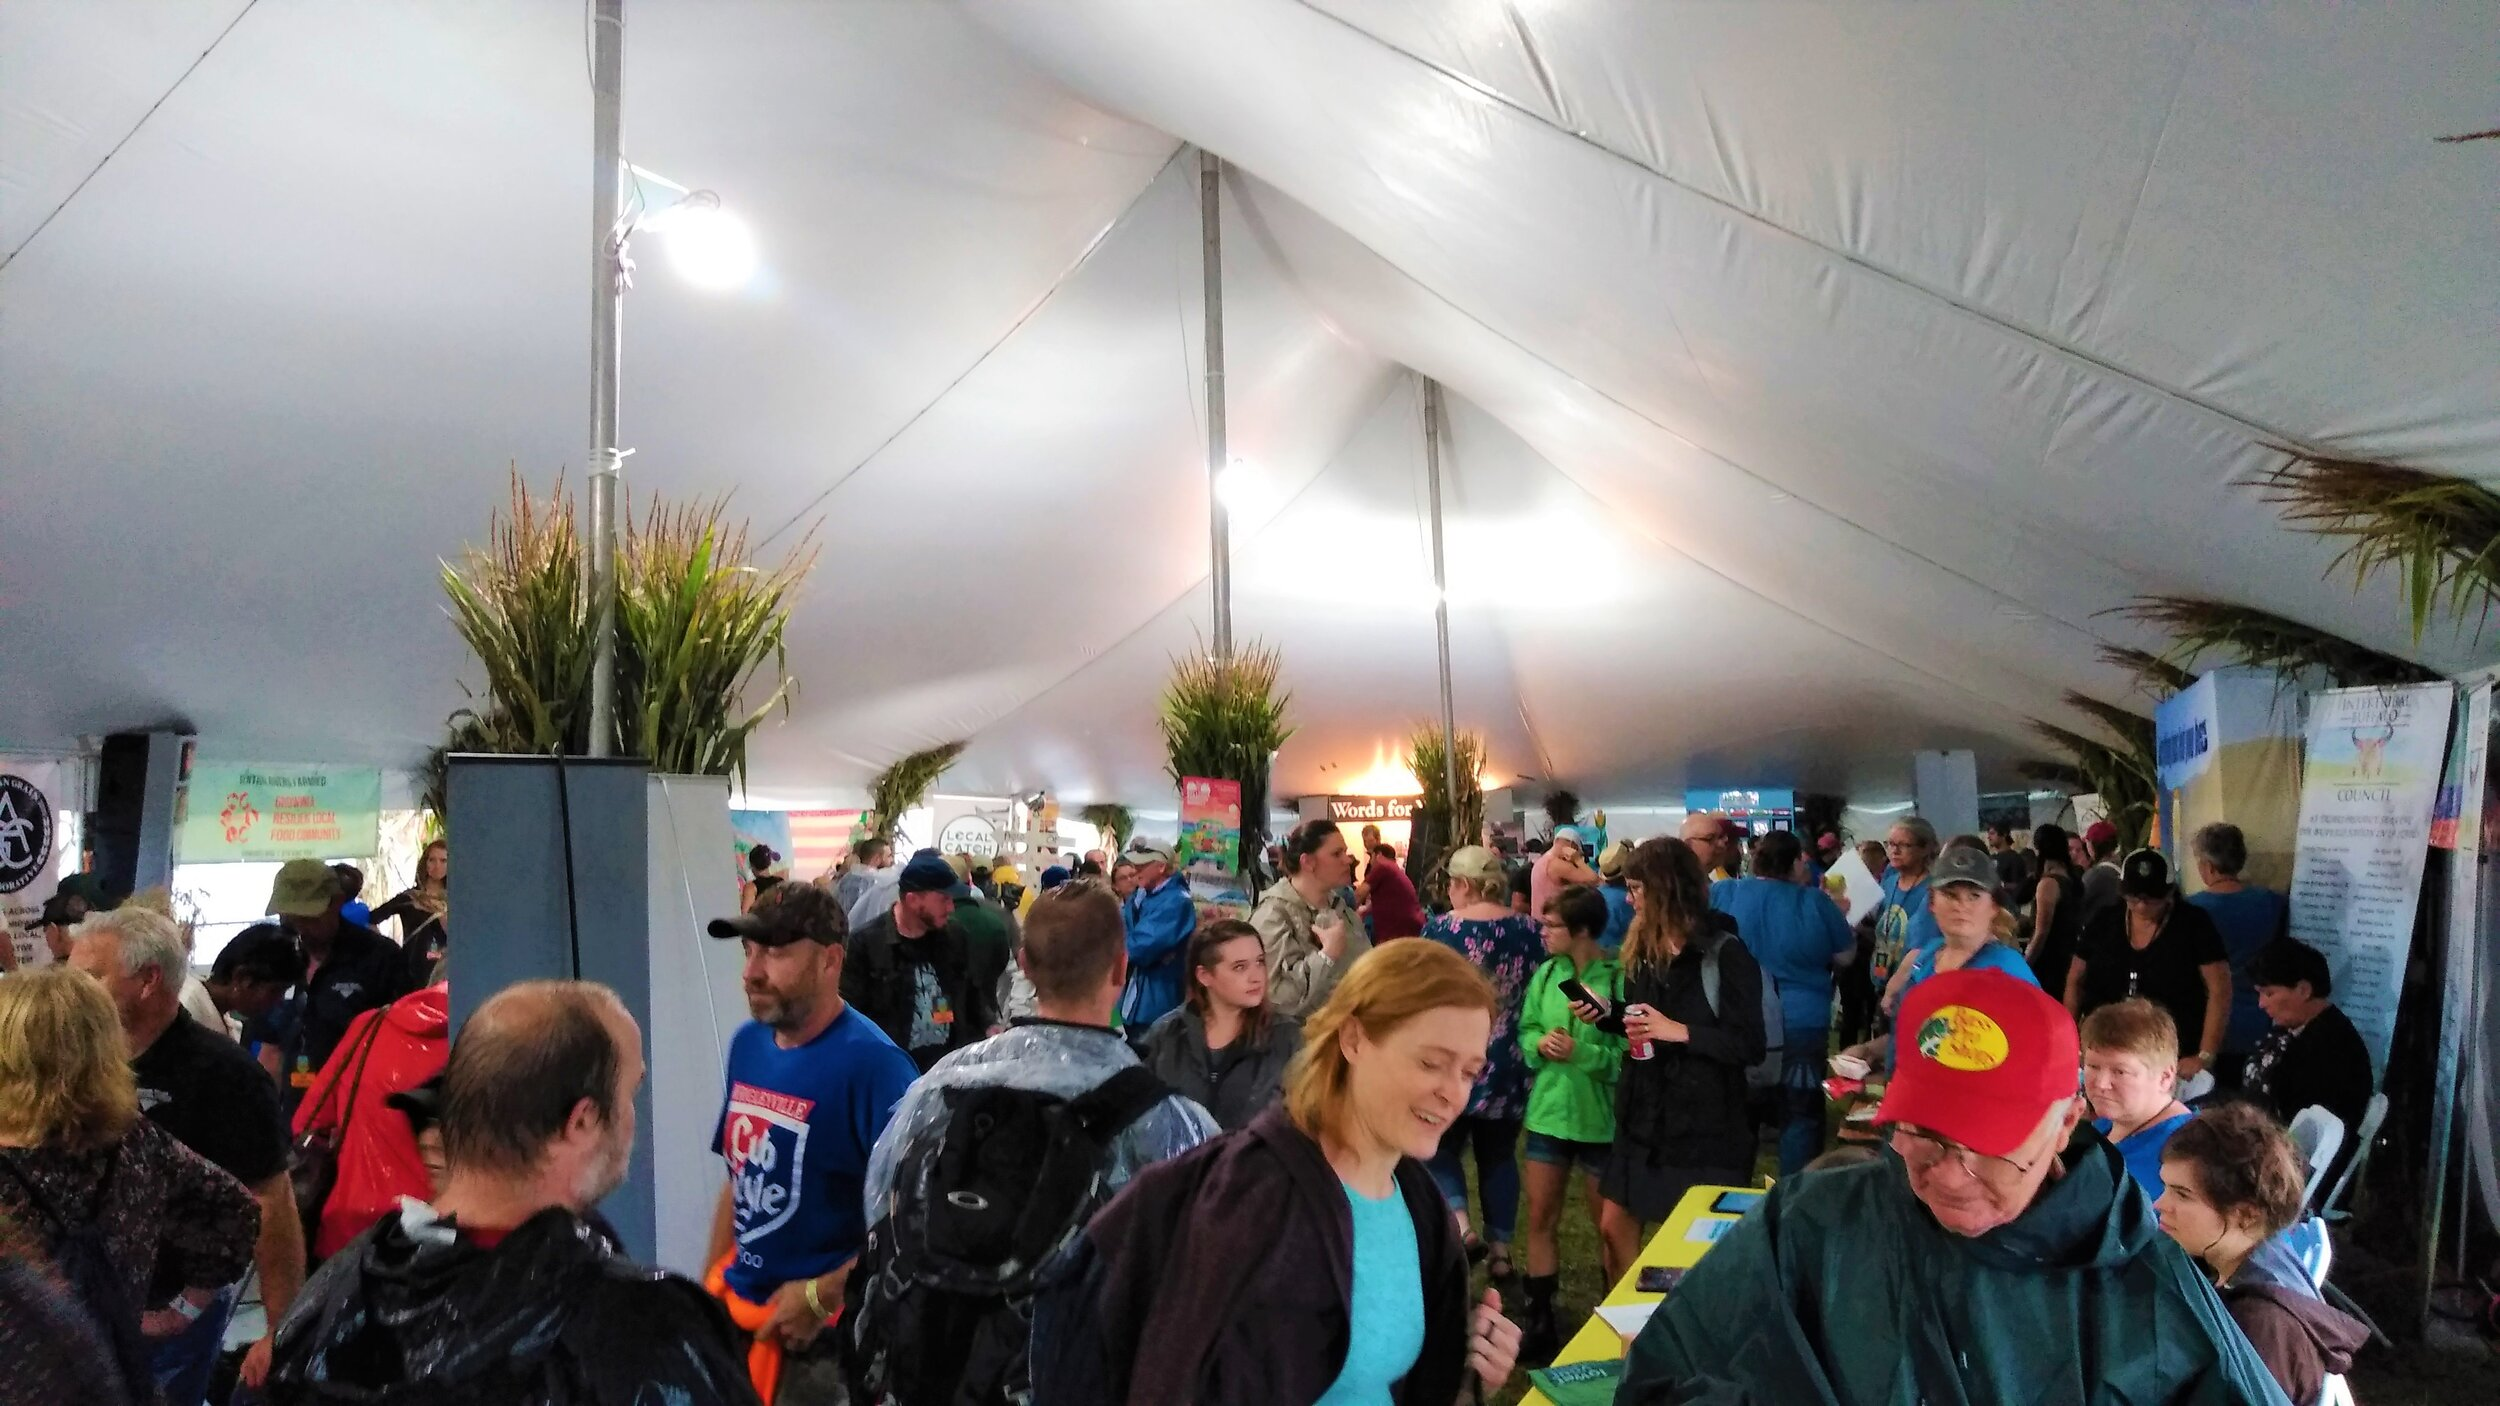 Inside the Homegrown village tent.